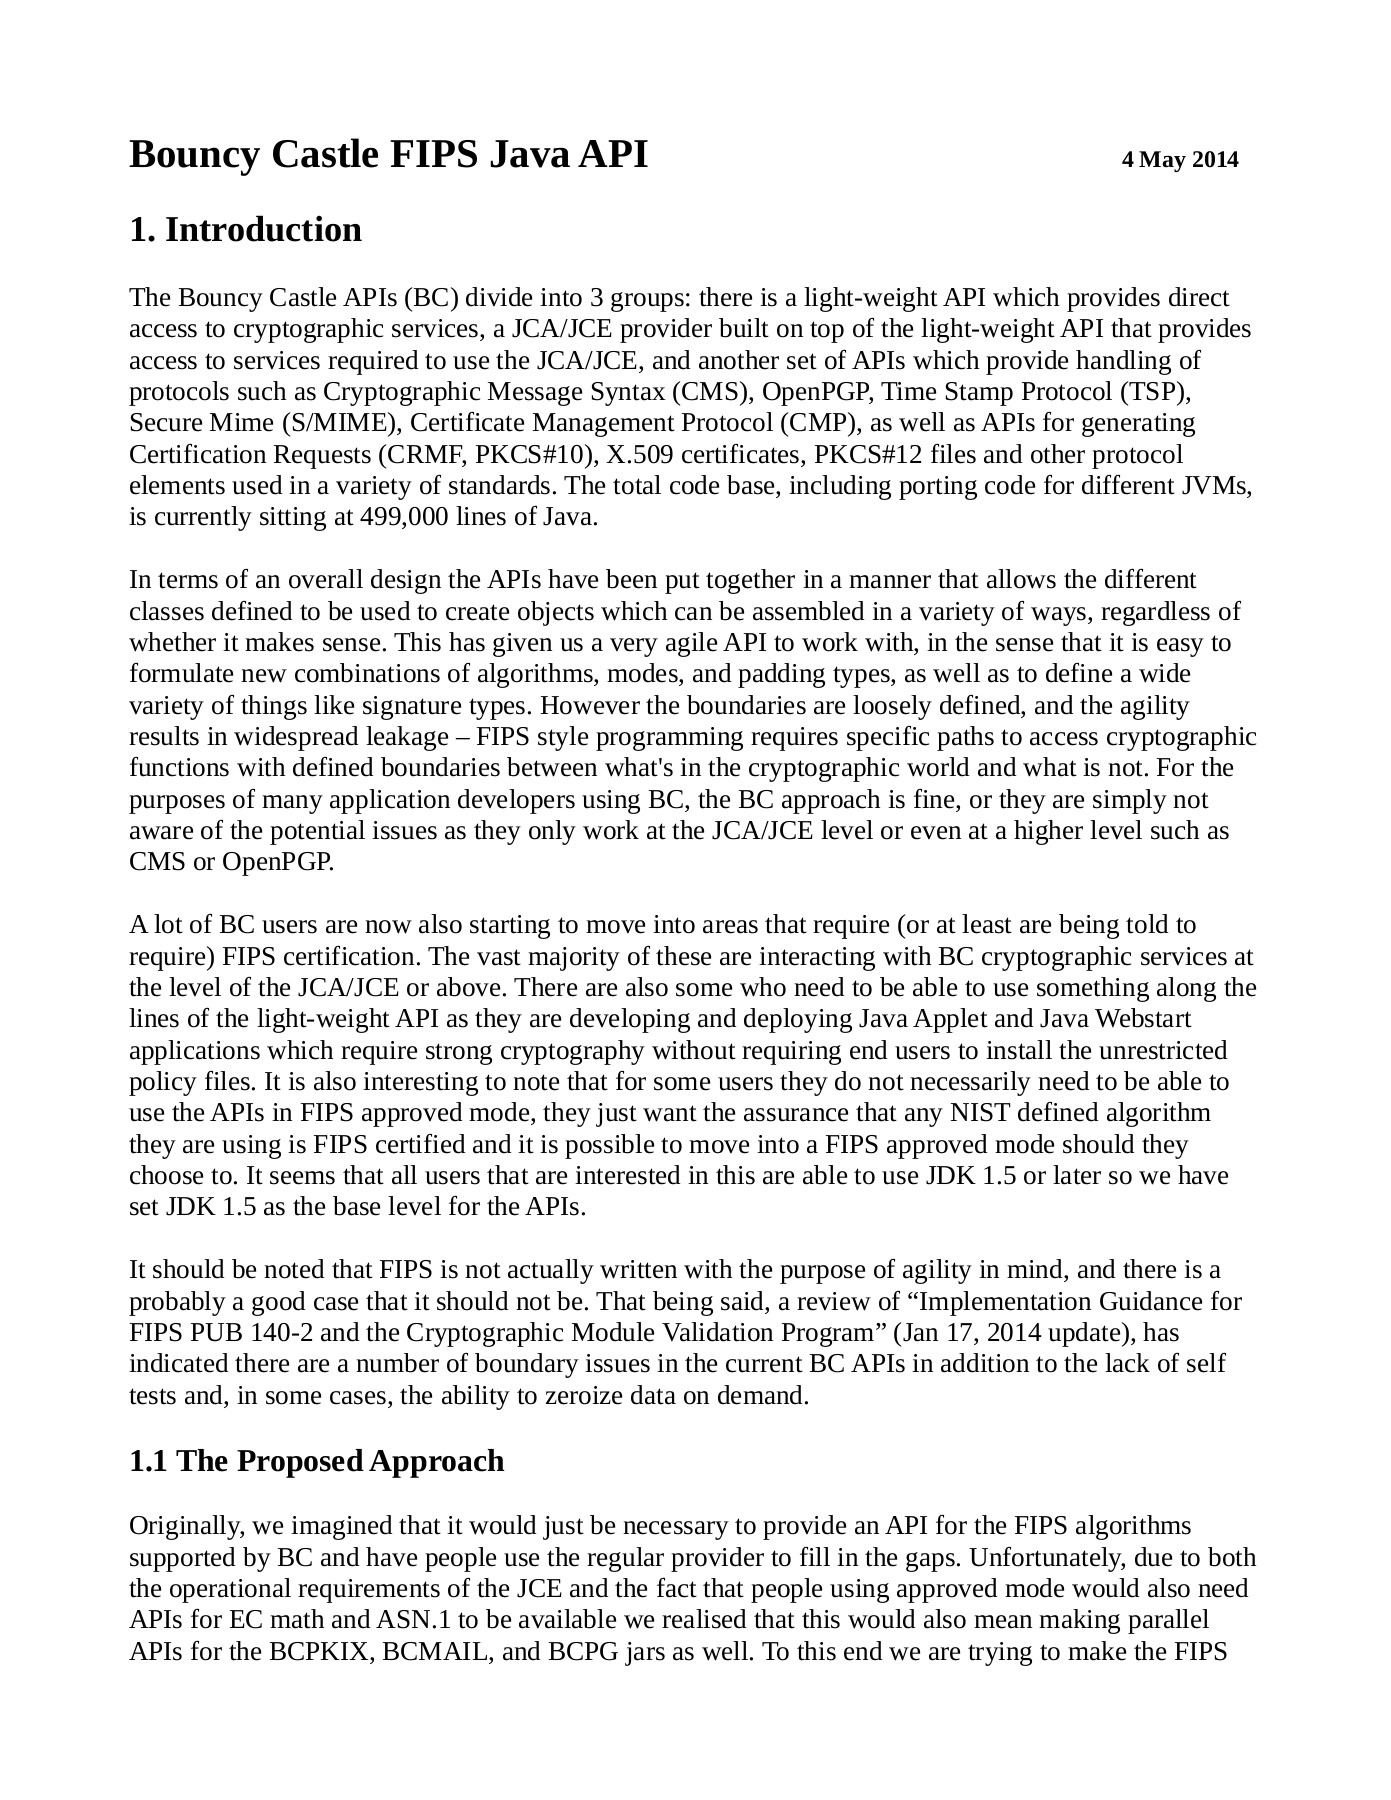 Bouncy Castle FIPS Java API 4 May 2014 Pages 1 - 12 - Text Version